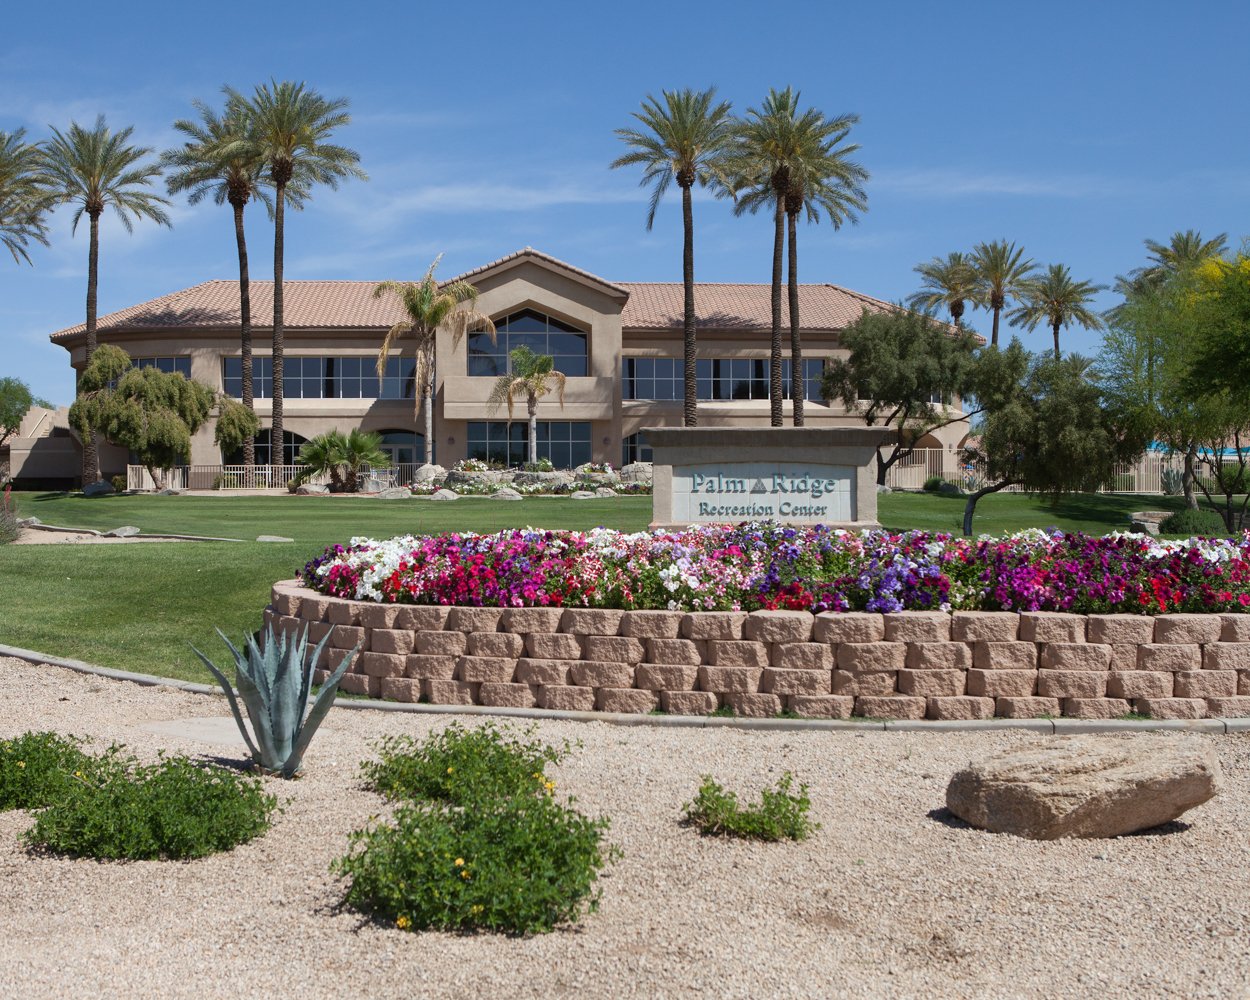 Palm Ridge recreation center, Sun City West